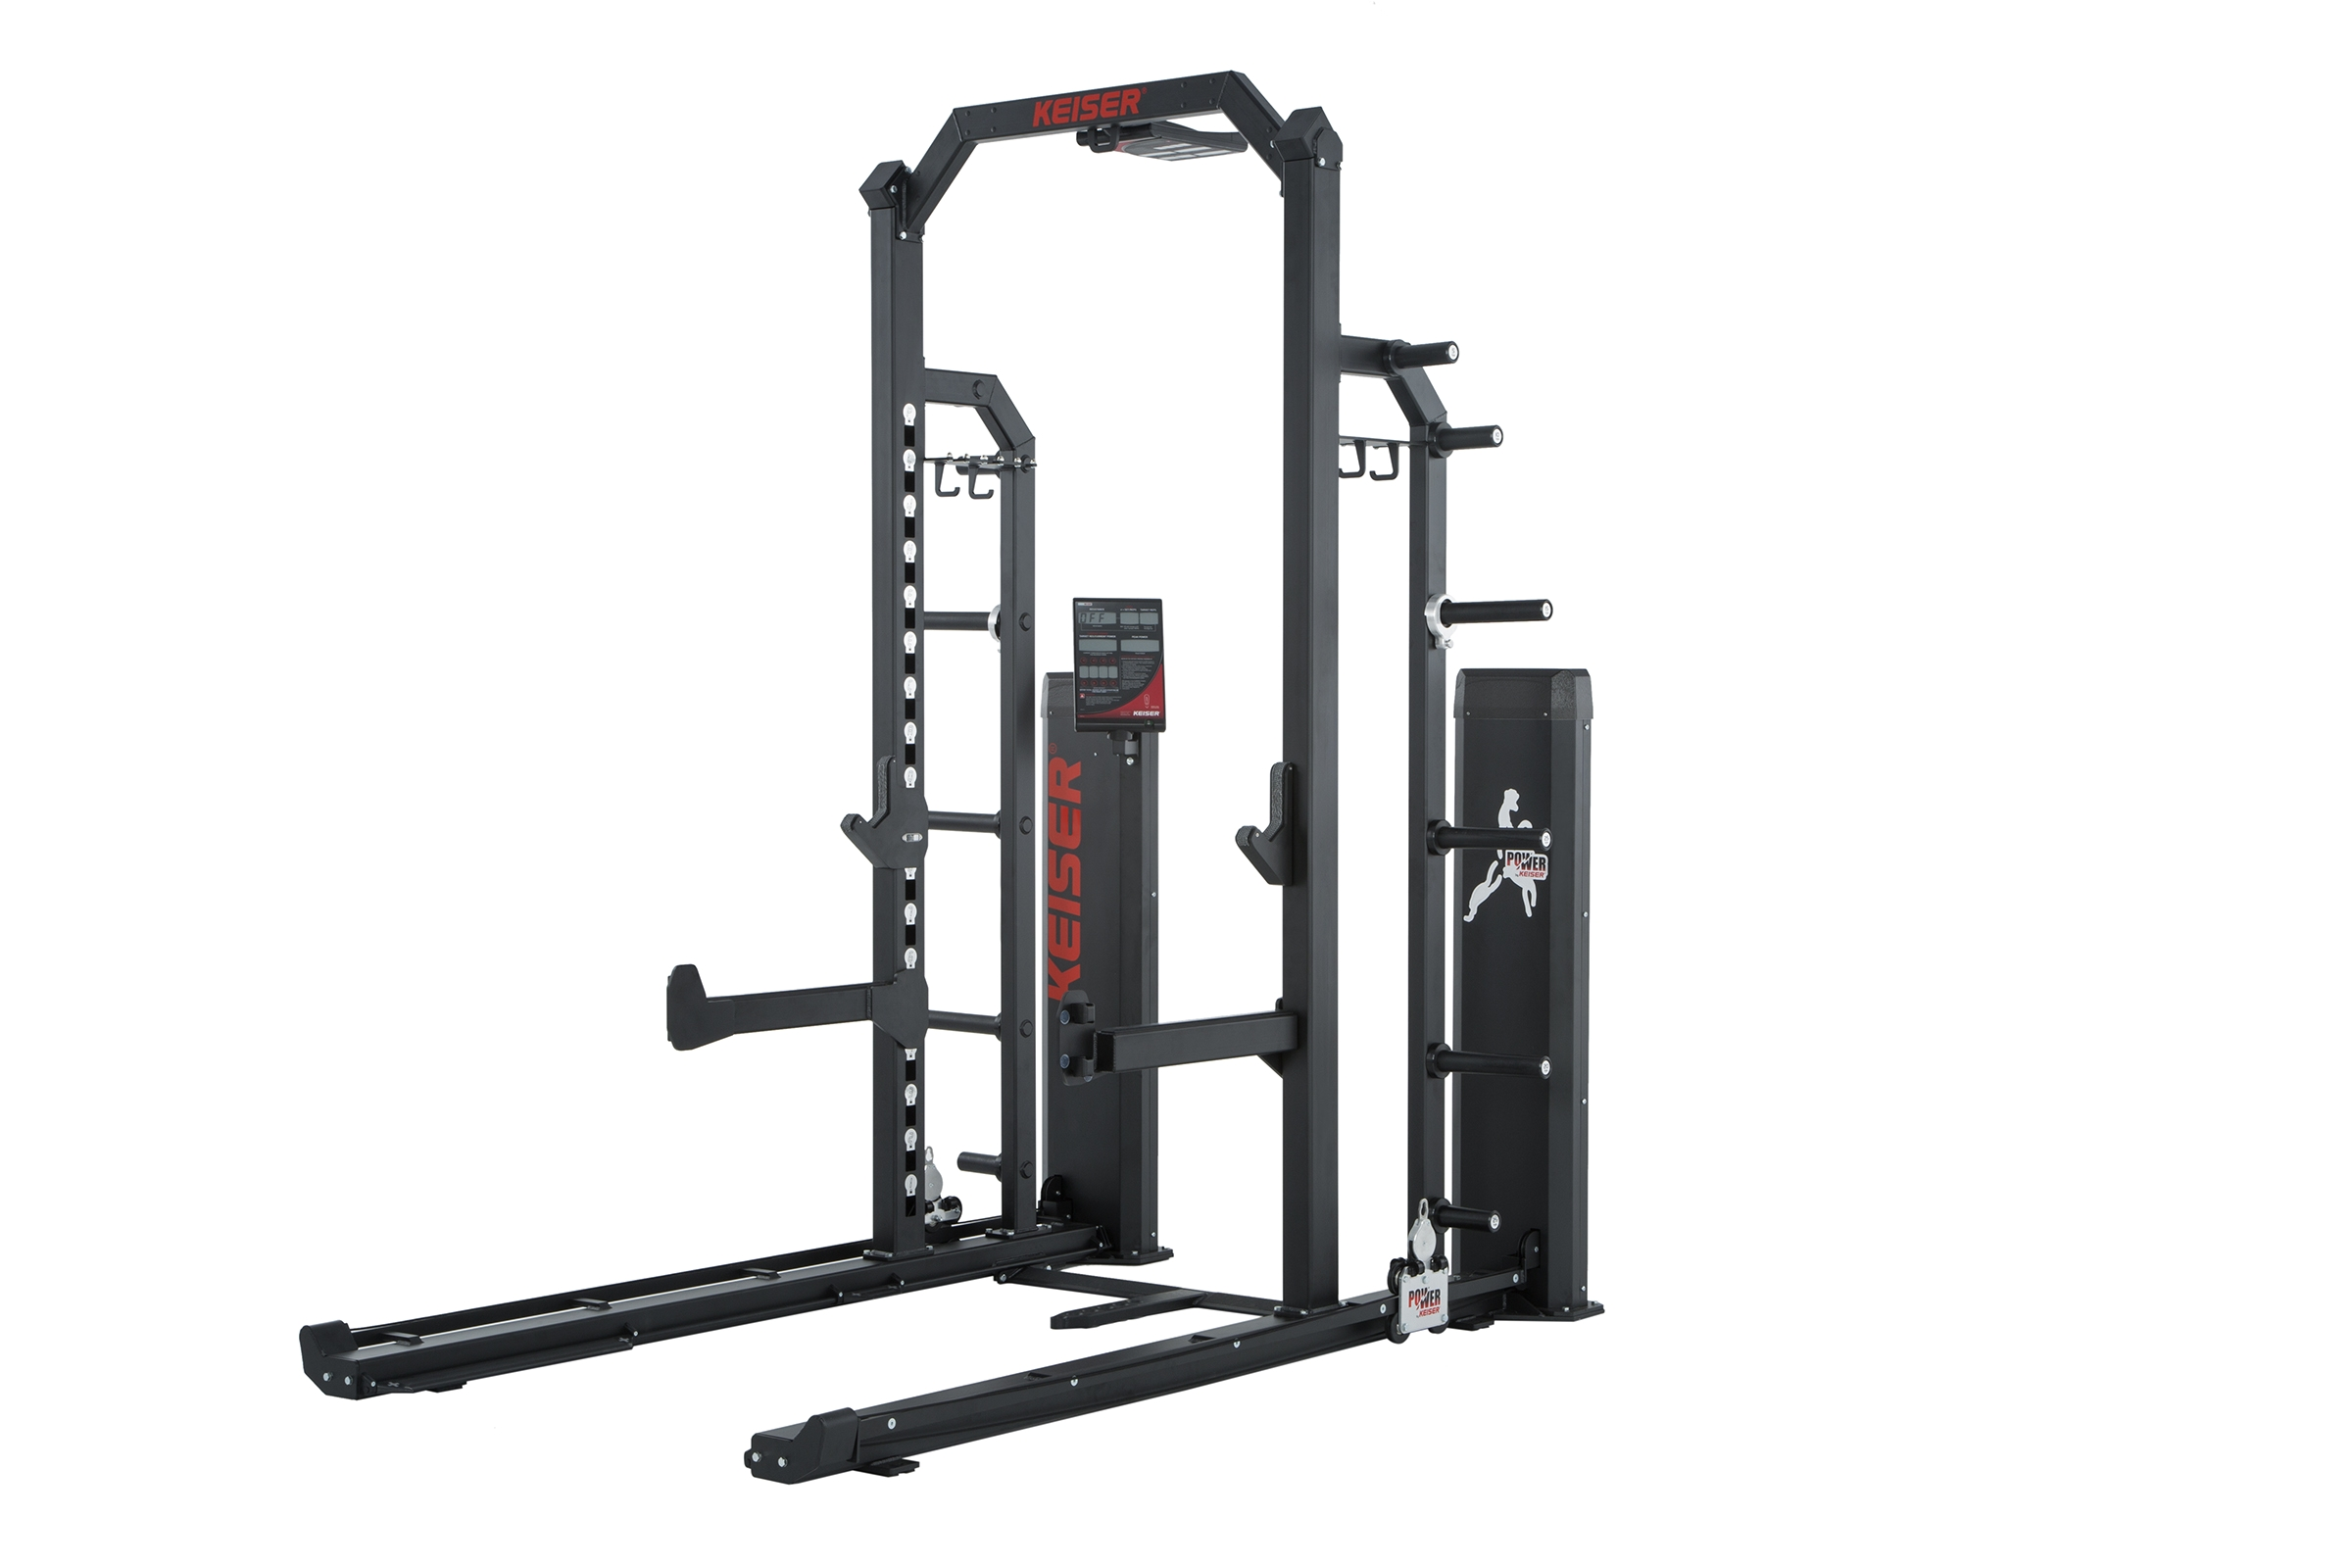 Rep Fitness A-1 Squat Rack with Pull Up Bar Half Rack Keiser